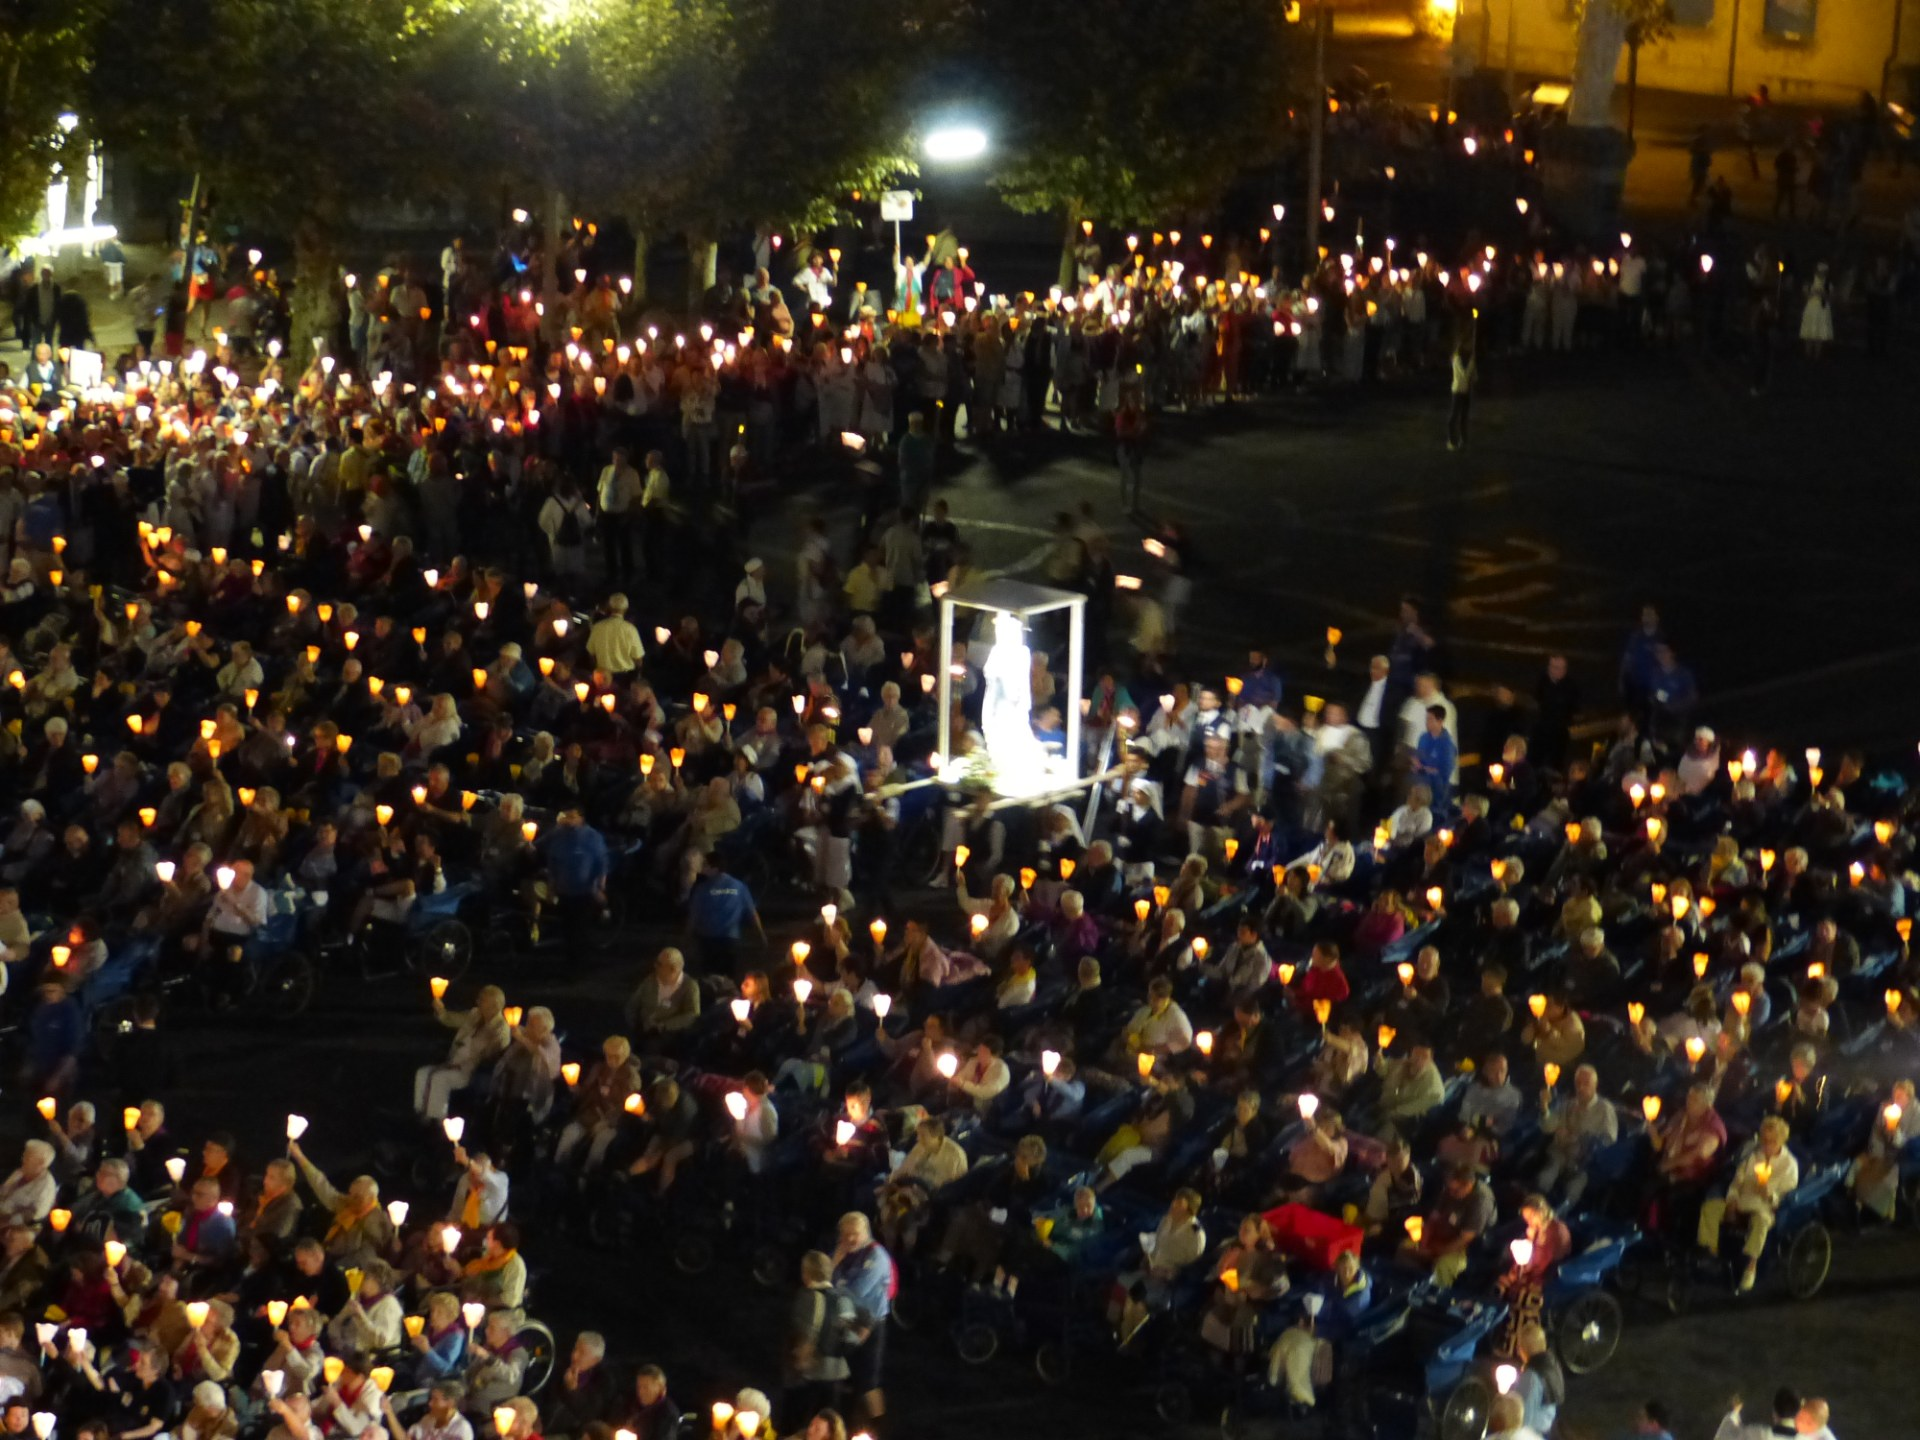 Lourdes2018-photos procession flambeaux 2 (4)